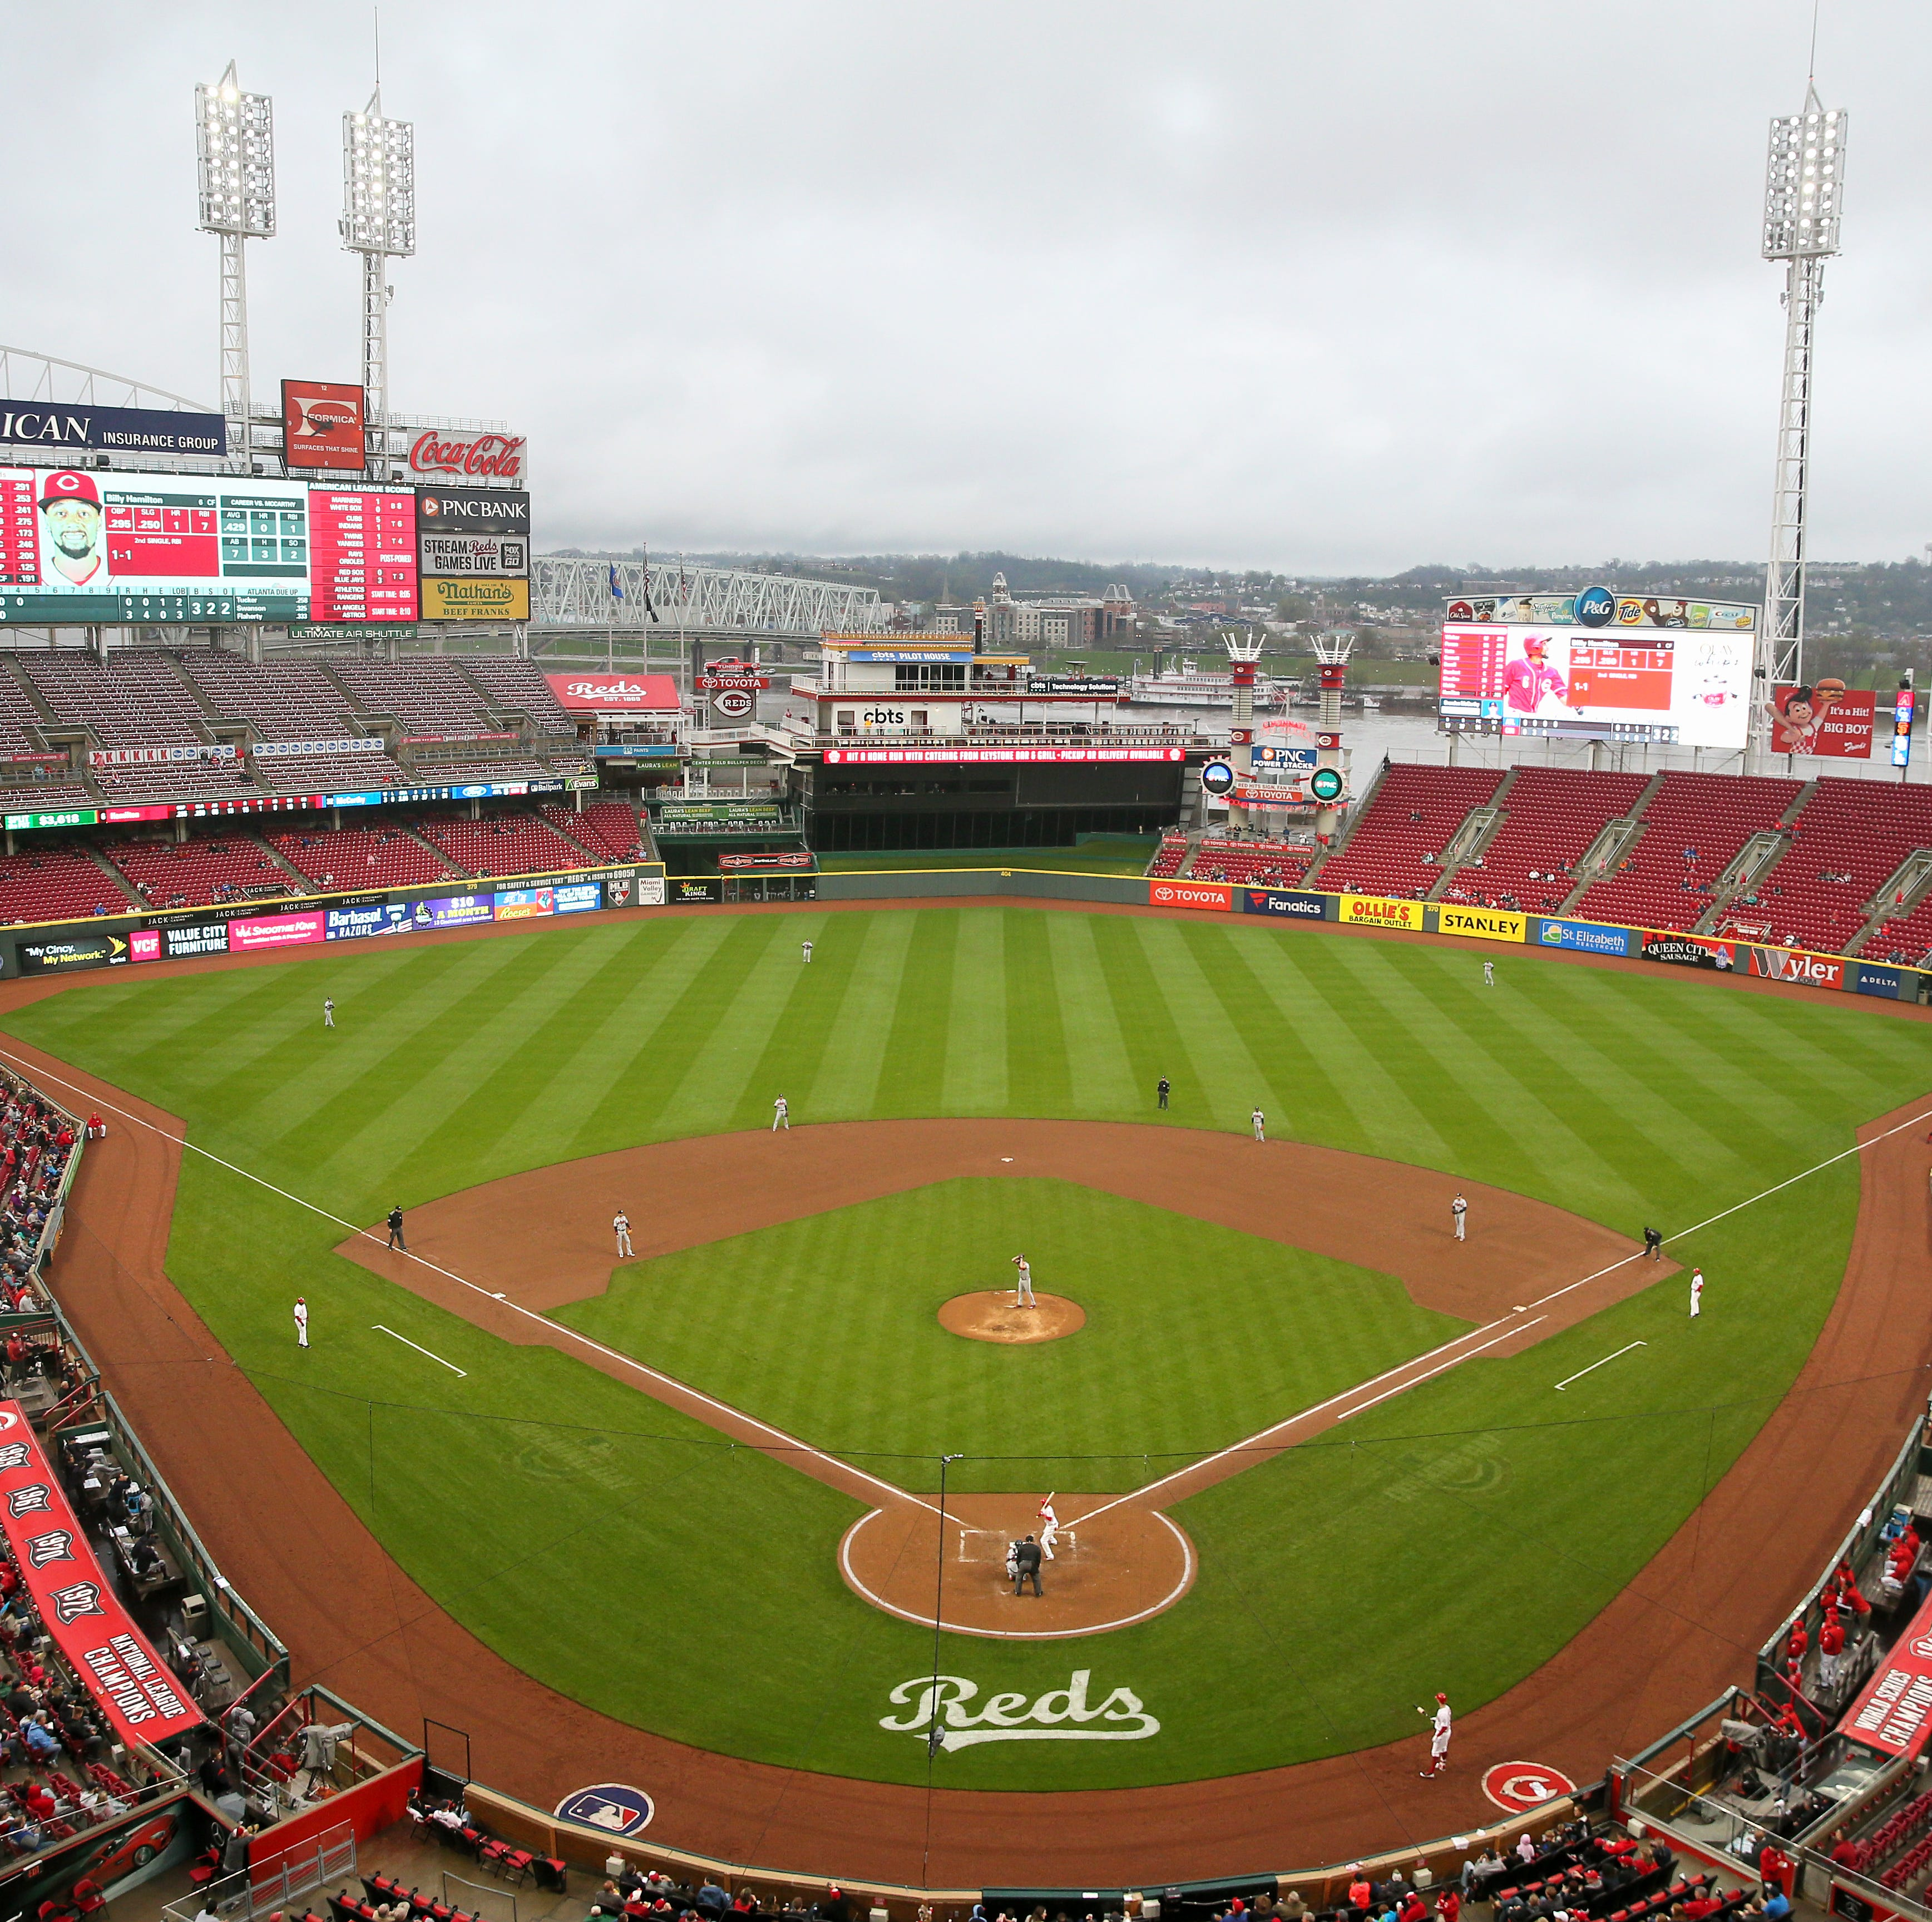 Cincinnati Reds' 2019 single-game tickets go on sale Monday